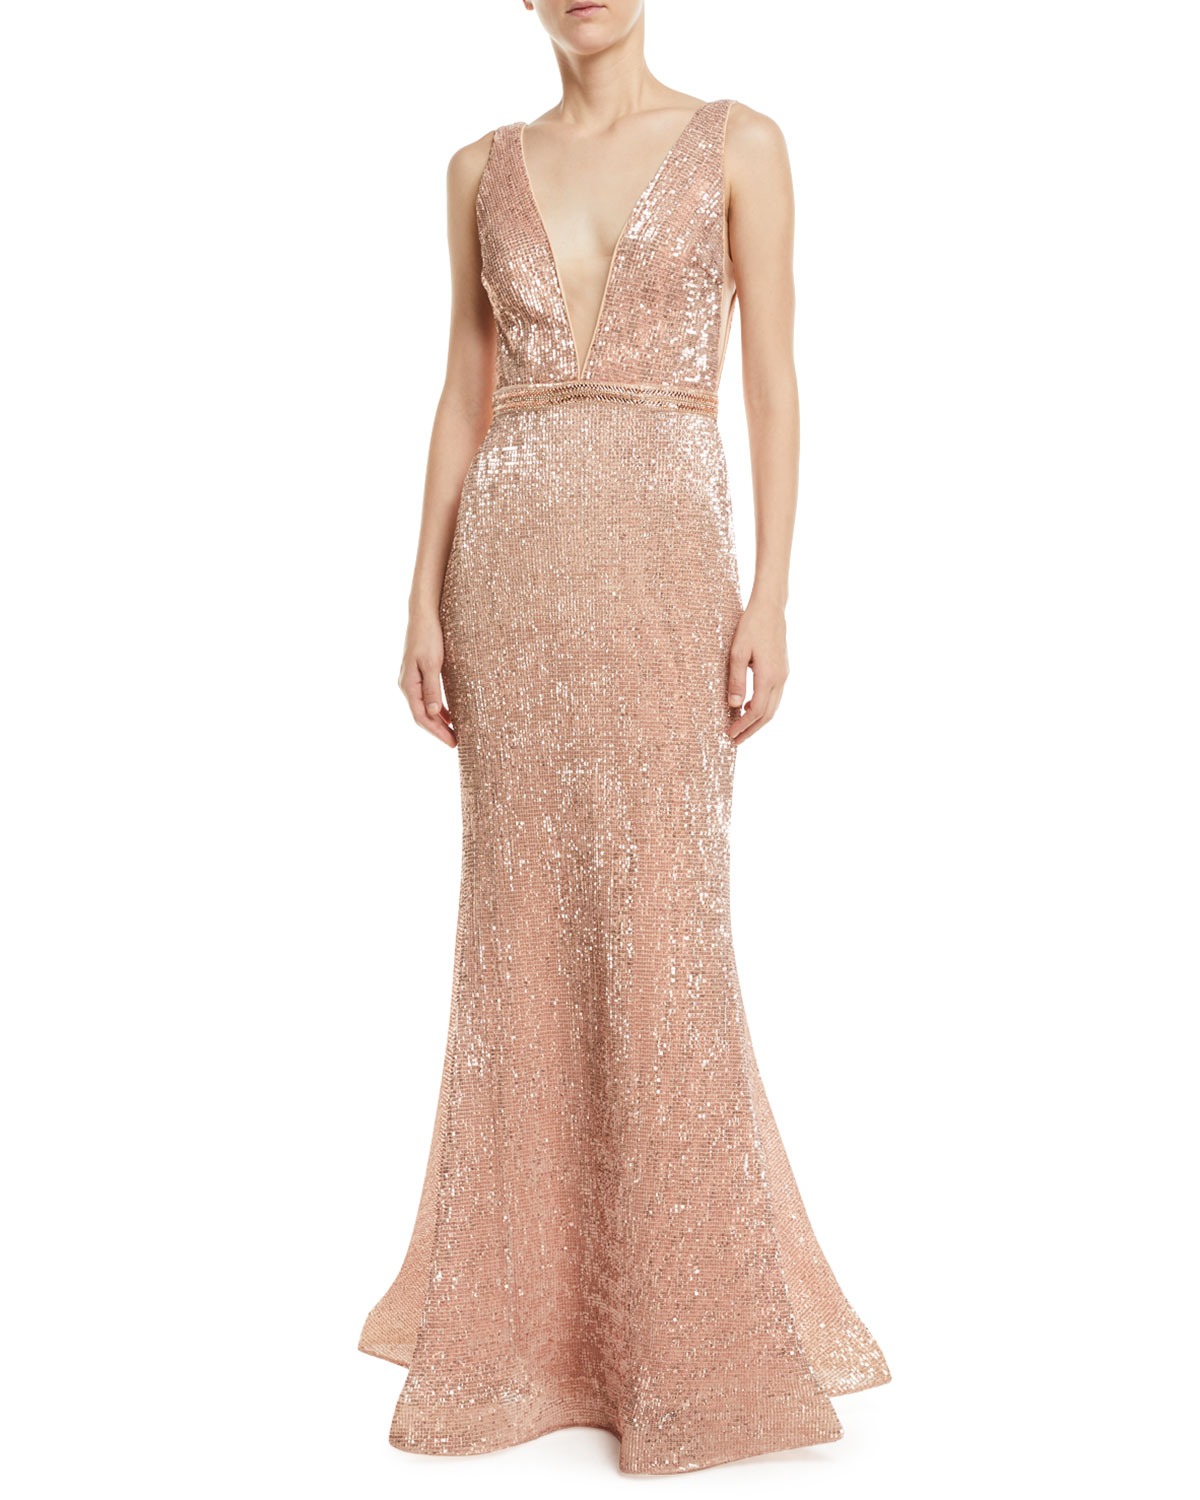 JOVANI Stretch Sequin V-Neck Gown in Pink/Gold